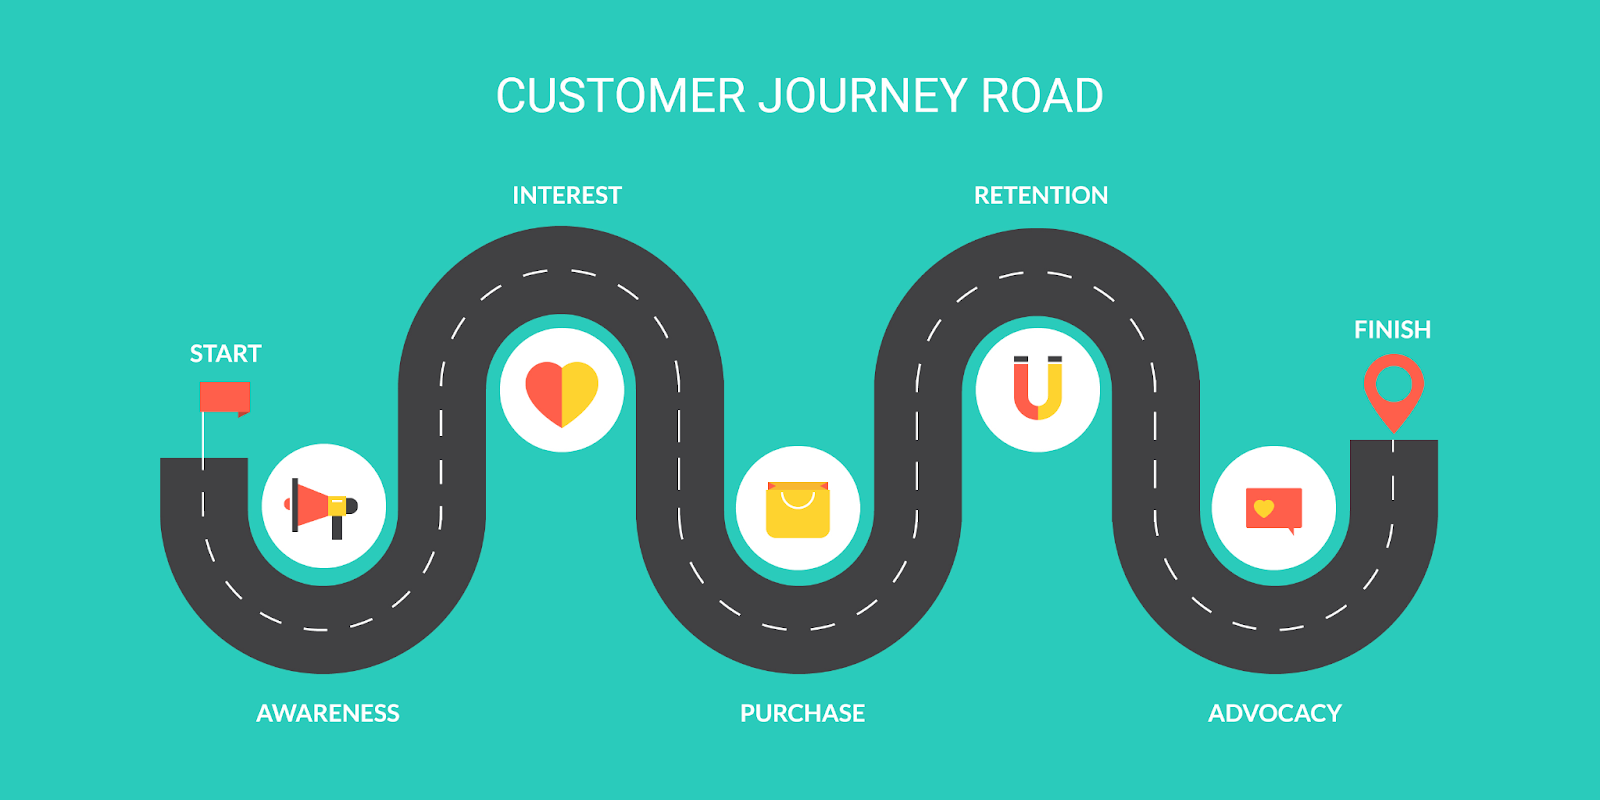 The customer journey road: awareness, interest, purchase, retention, advocacy.